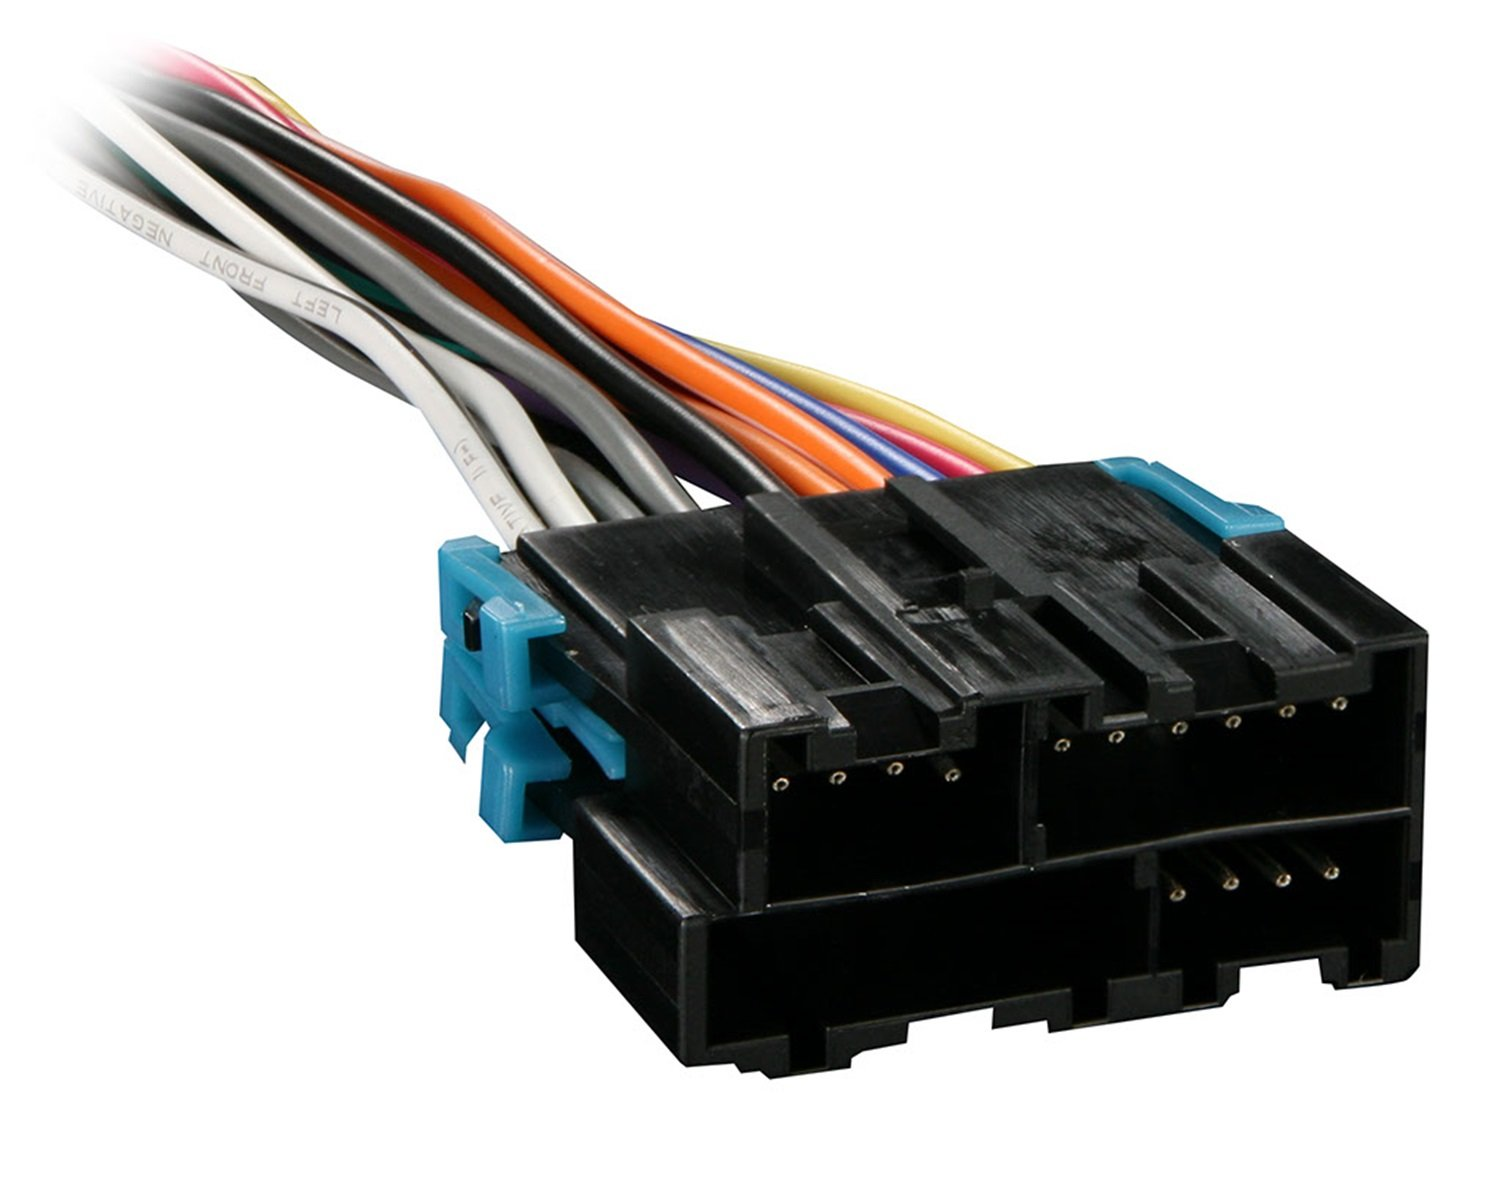 61 CwjZt1hL._SL1500_ radio wiring harnesses amazon com wiring harness kits for car stereo at mr168.co